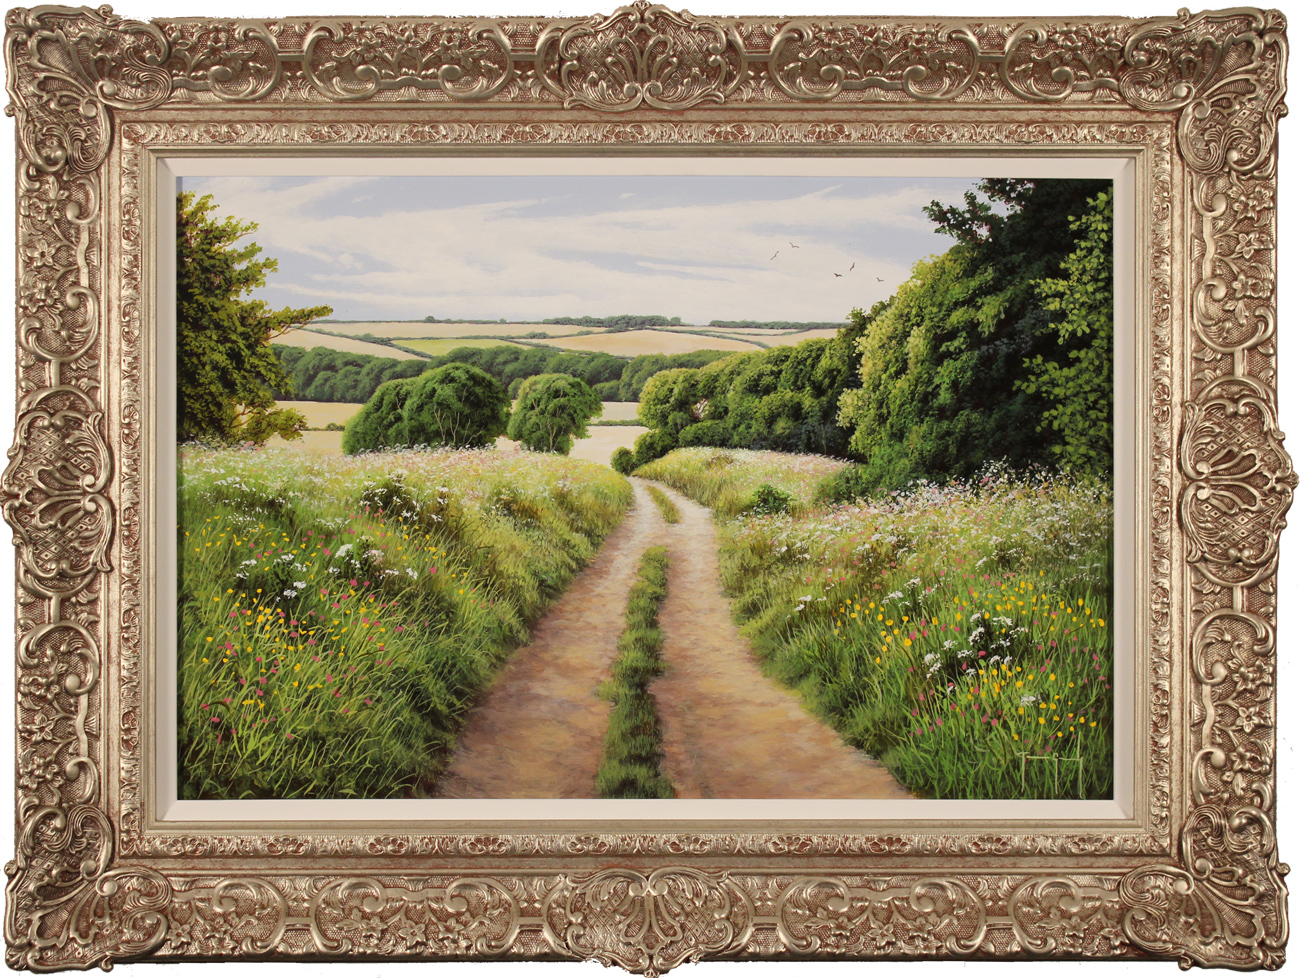 Terry Grundy, Original oil painting on panel, Summer in the Yorkshire Wolds Click to enlarge